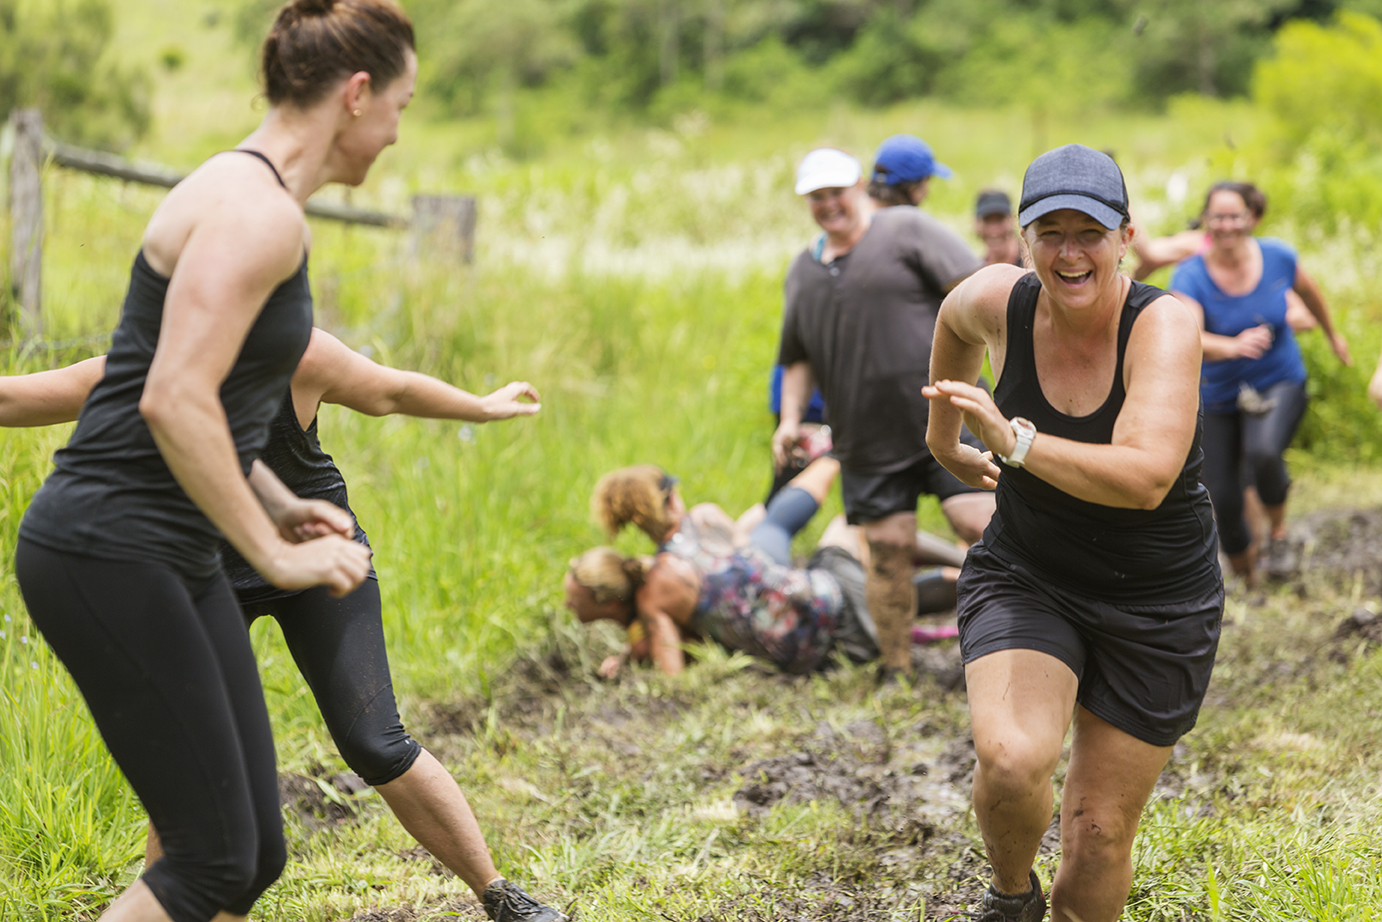 Mud Covered Mature Women in an Obstacle Course Bog